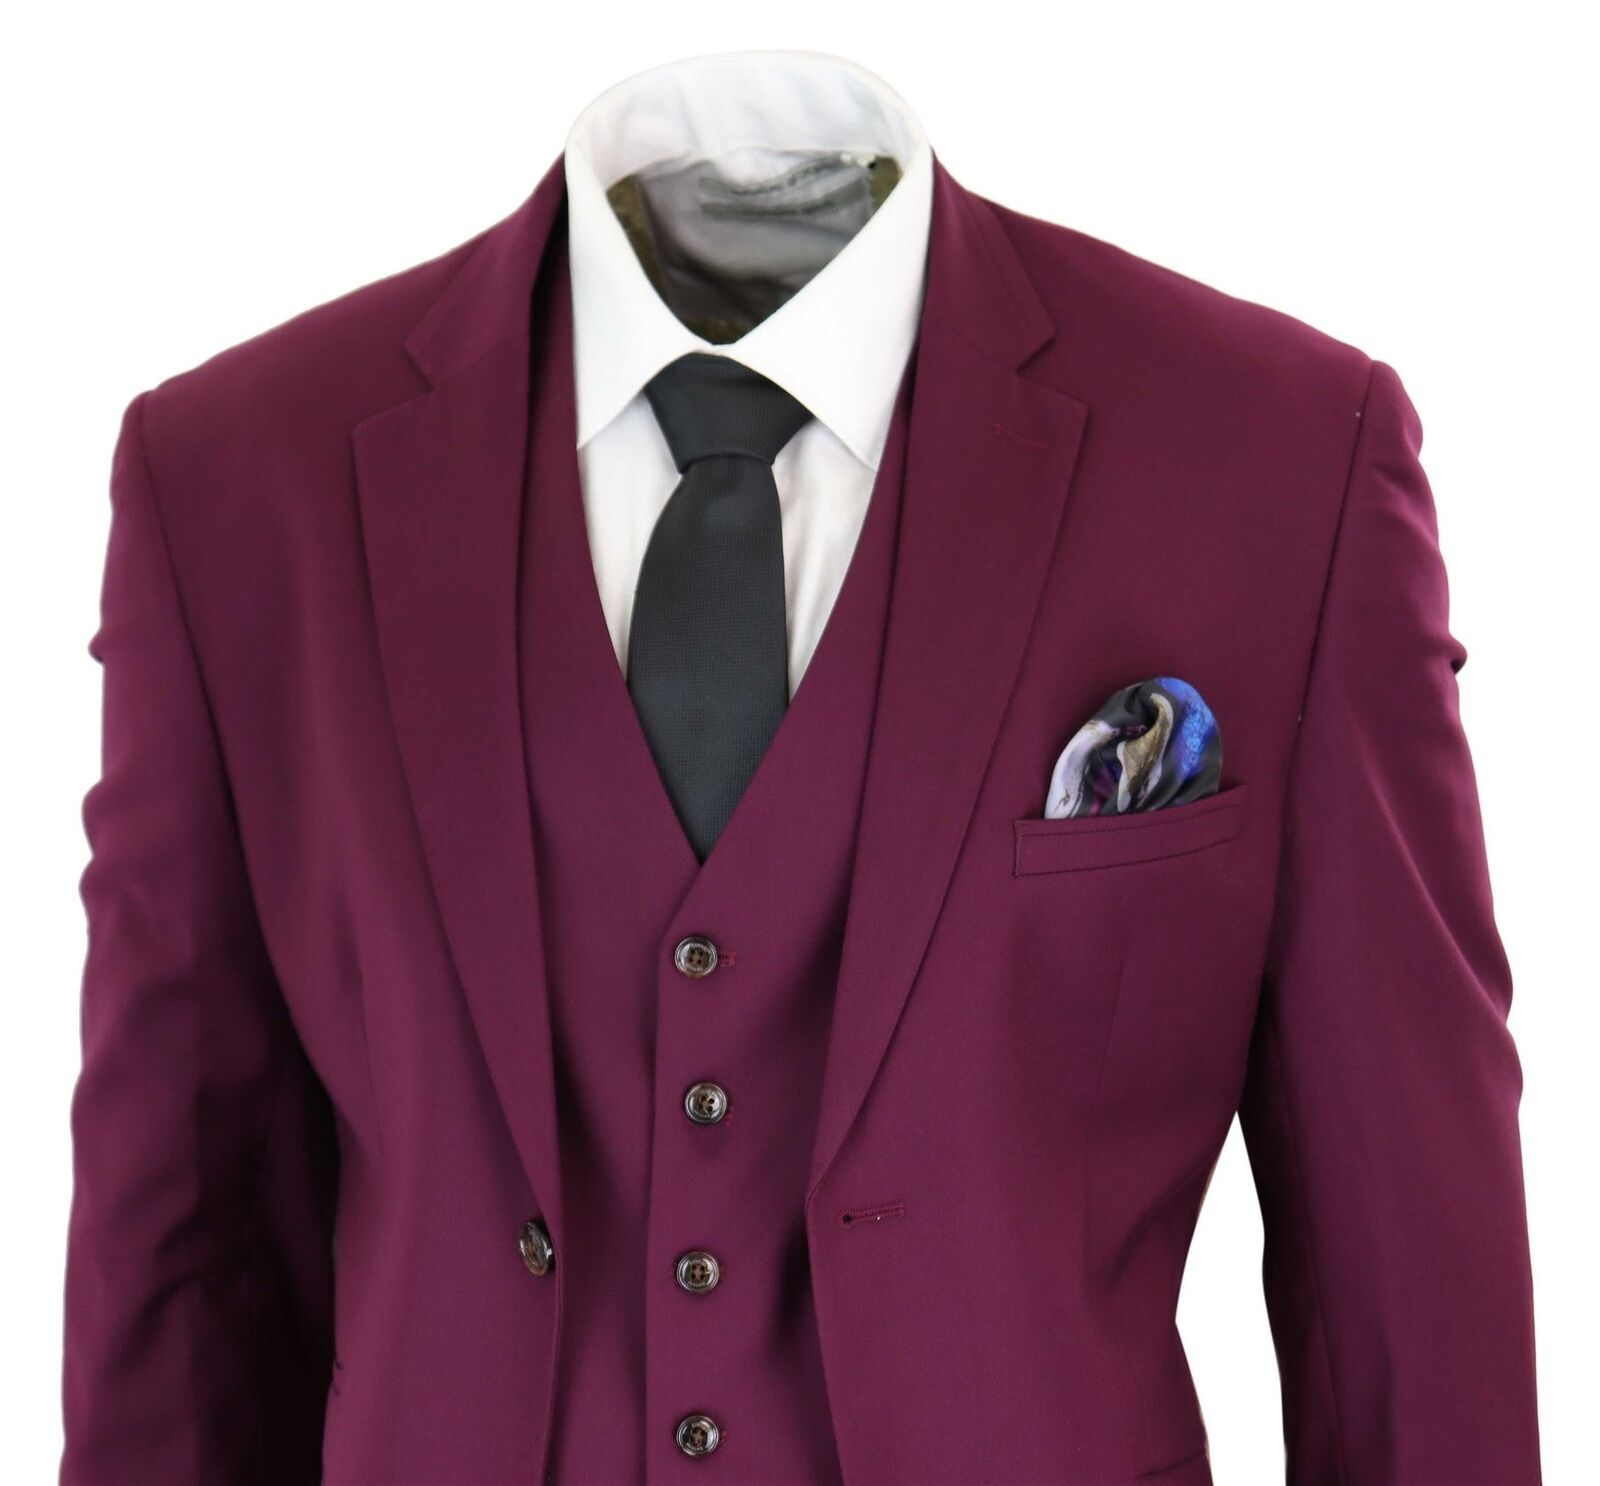 Mens Tailored Fit 3 Piece Wine Burgundy Suit Wedding Prom Party Classic Formal